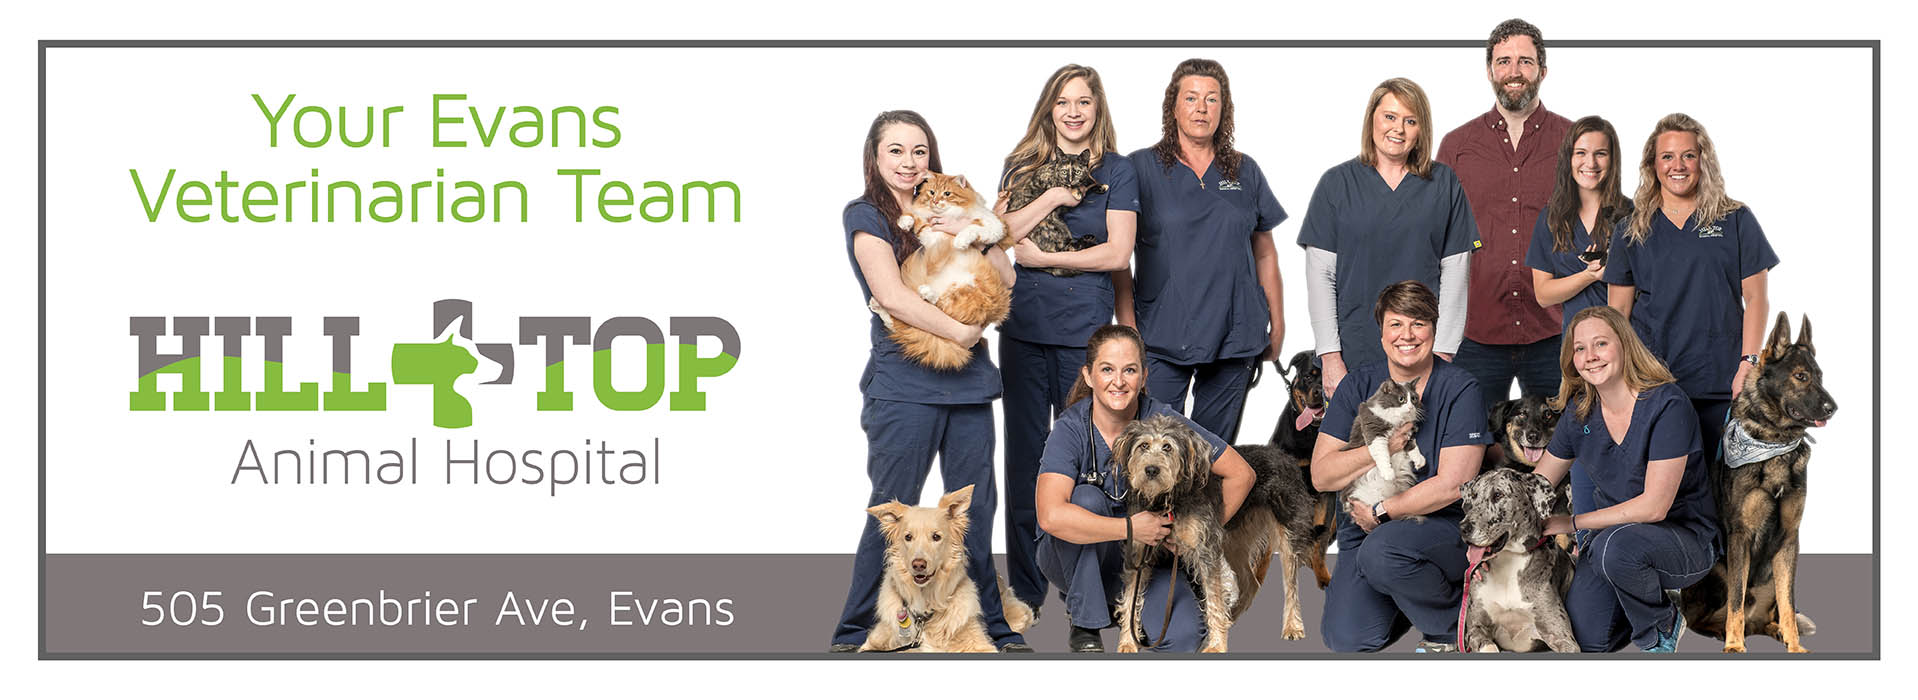 Your Evans Veterinarian Team at Hill Top